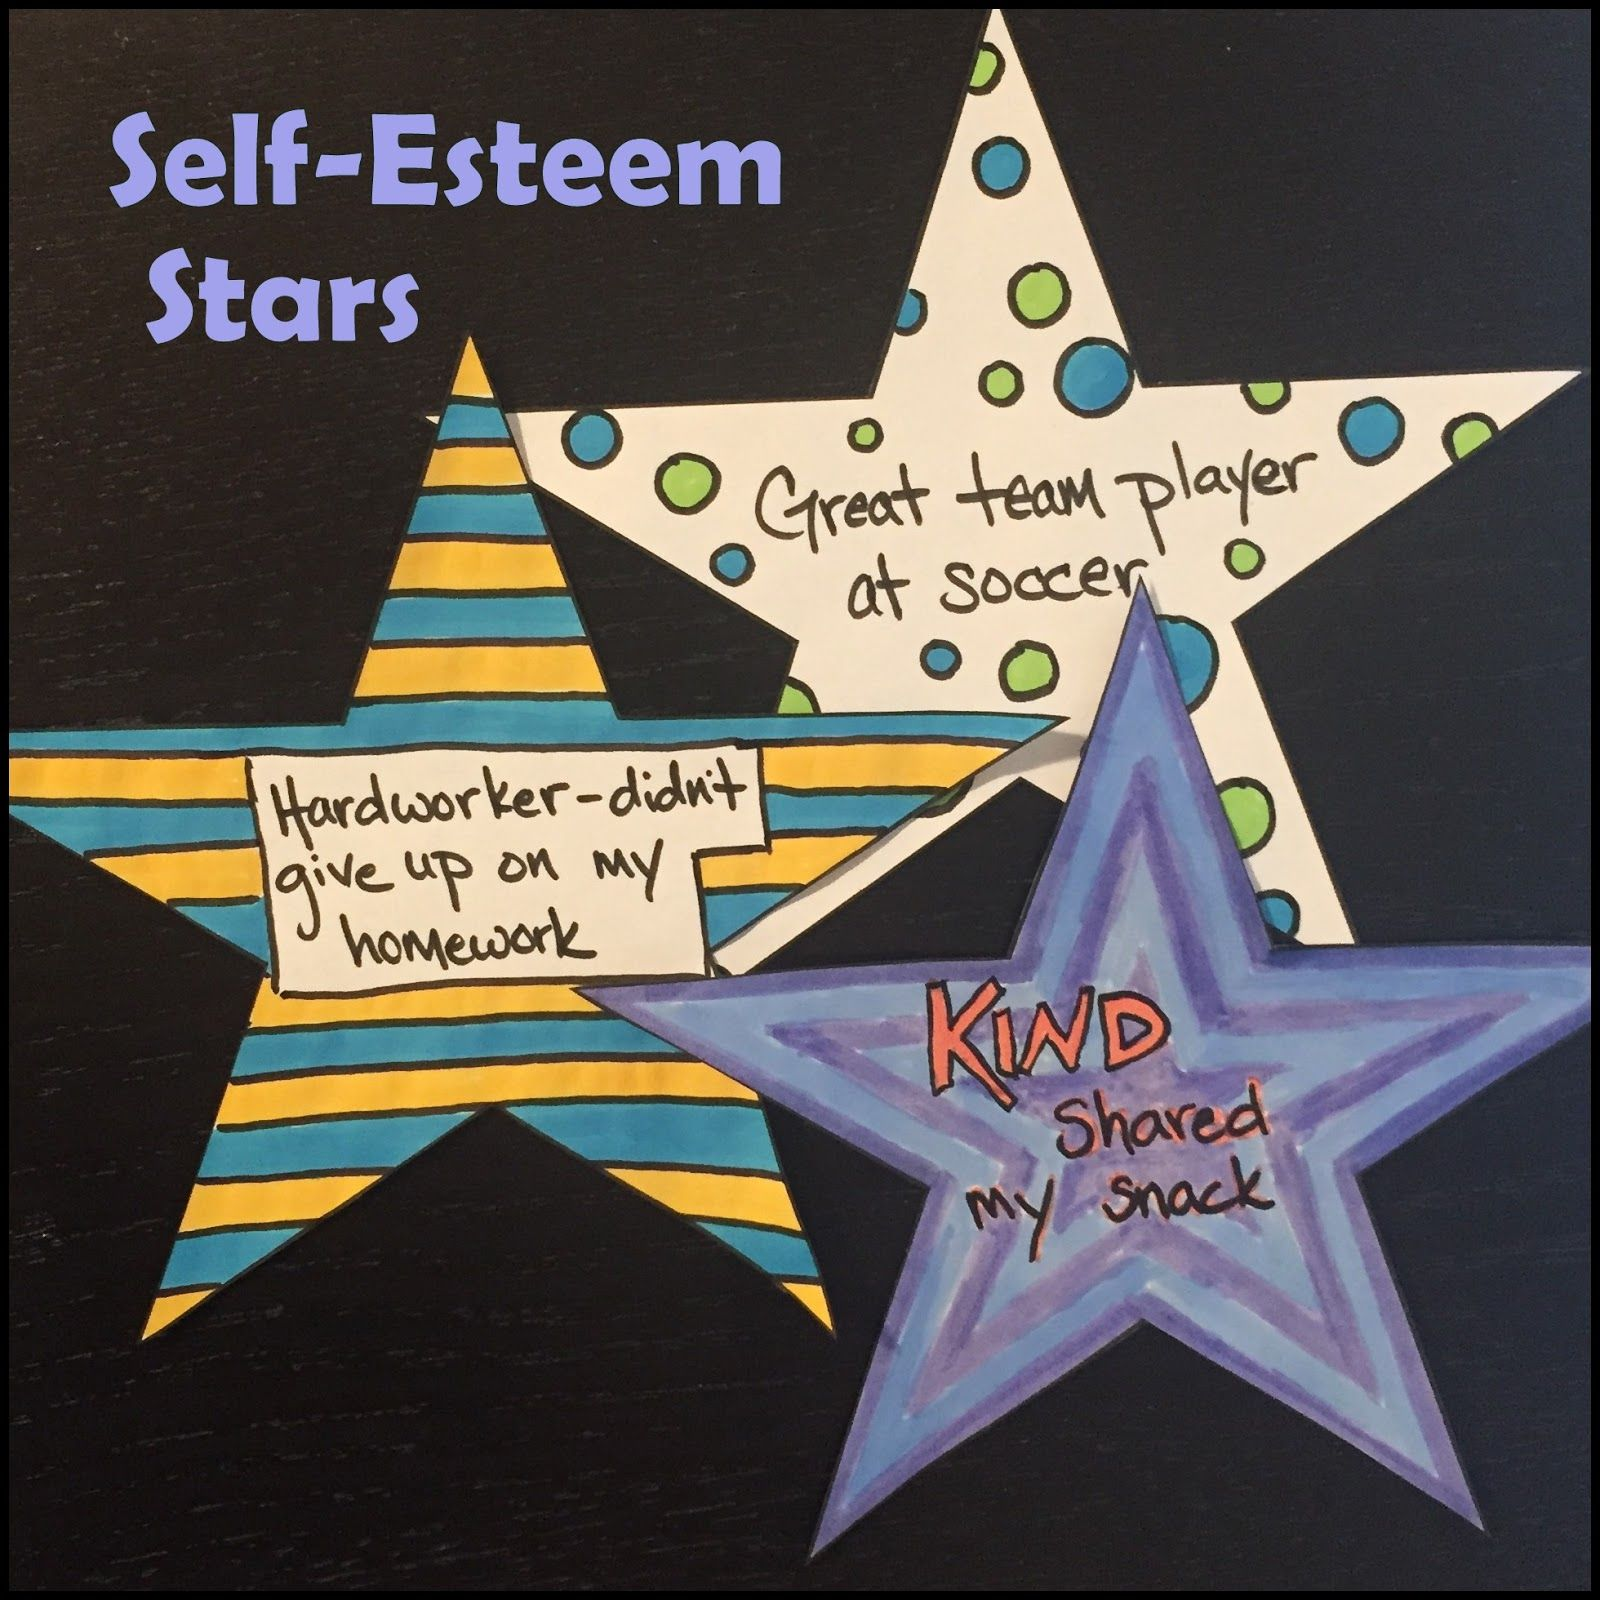 Self Esteem Stars An Activity To Build Confidence And Self Esteem Art Therapy Activities Self Esteem Activities Self Esteem [ 1600 x 1600 Pixel ]